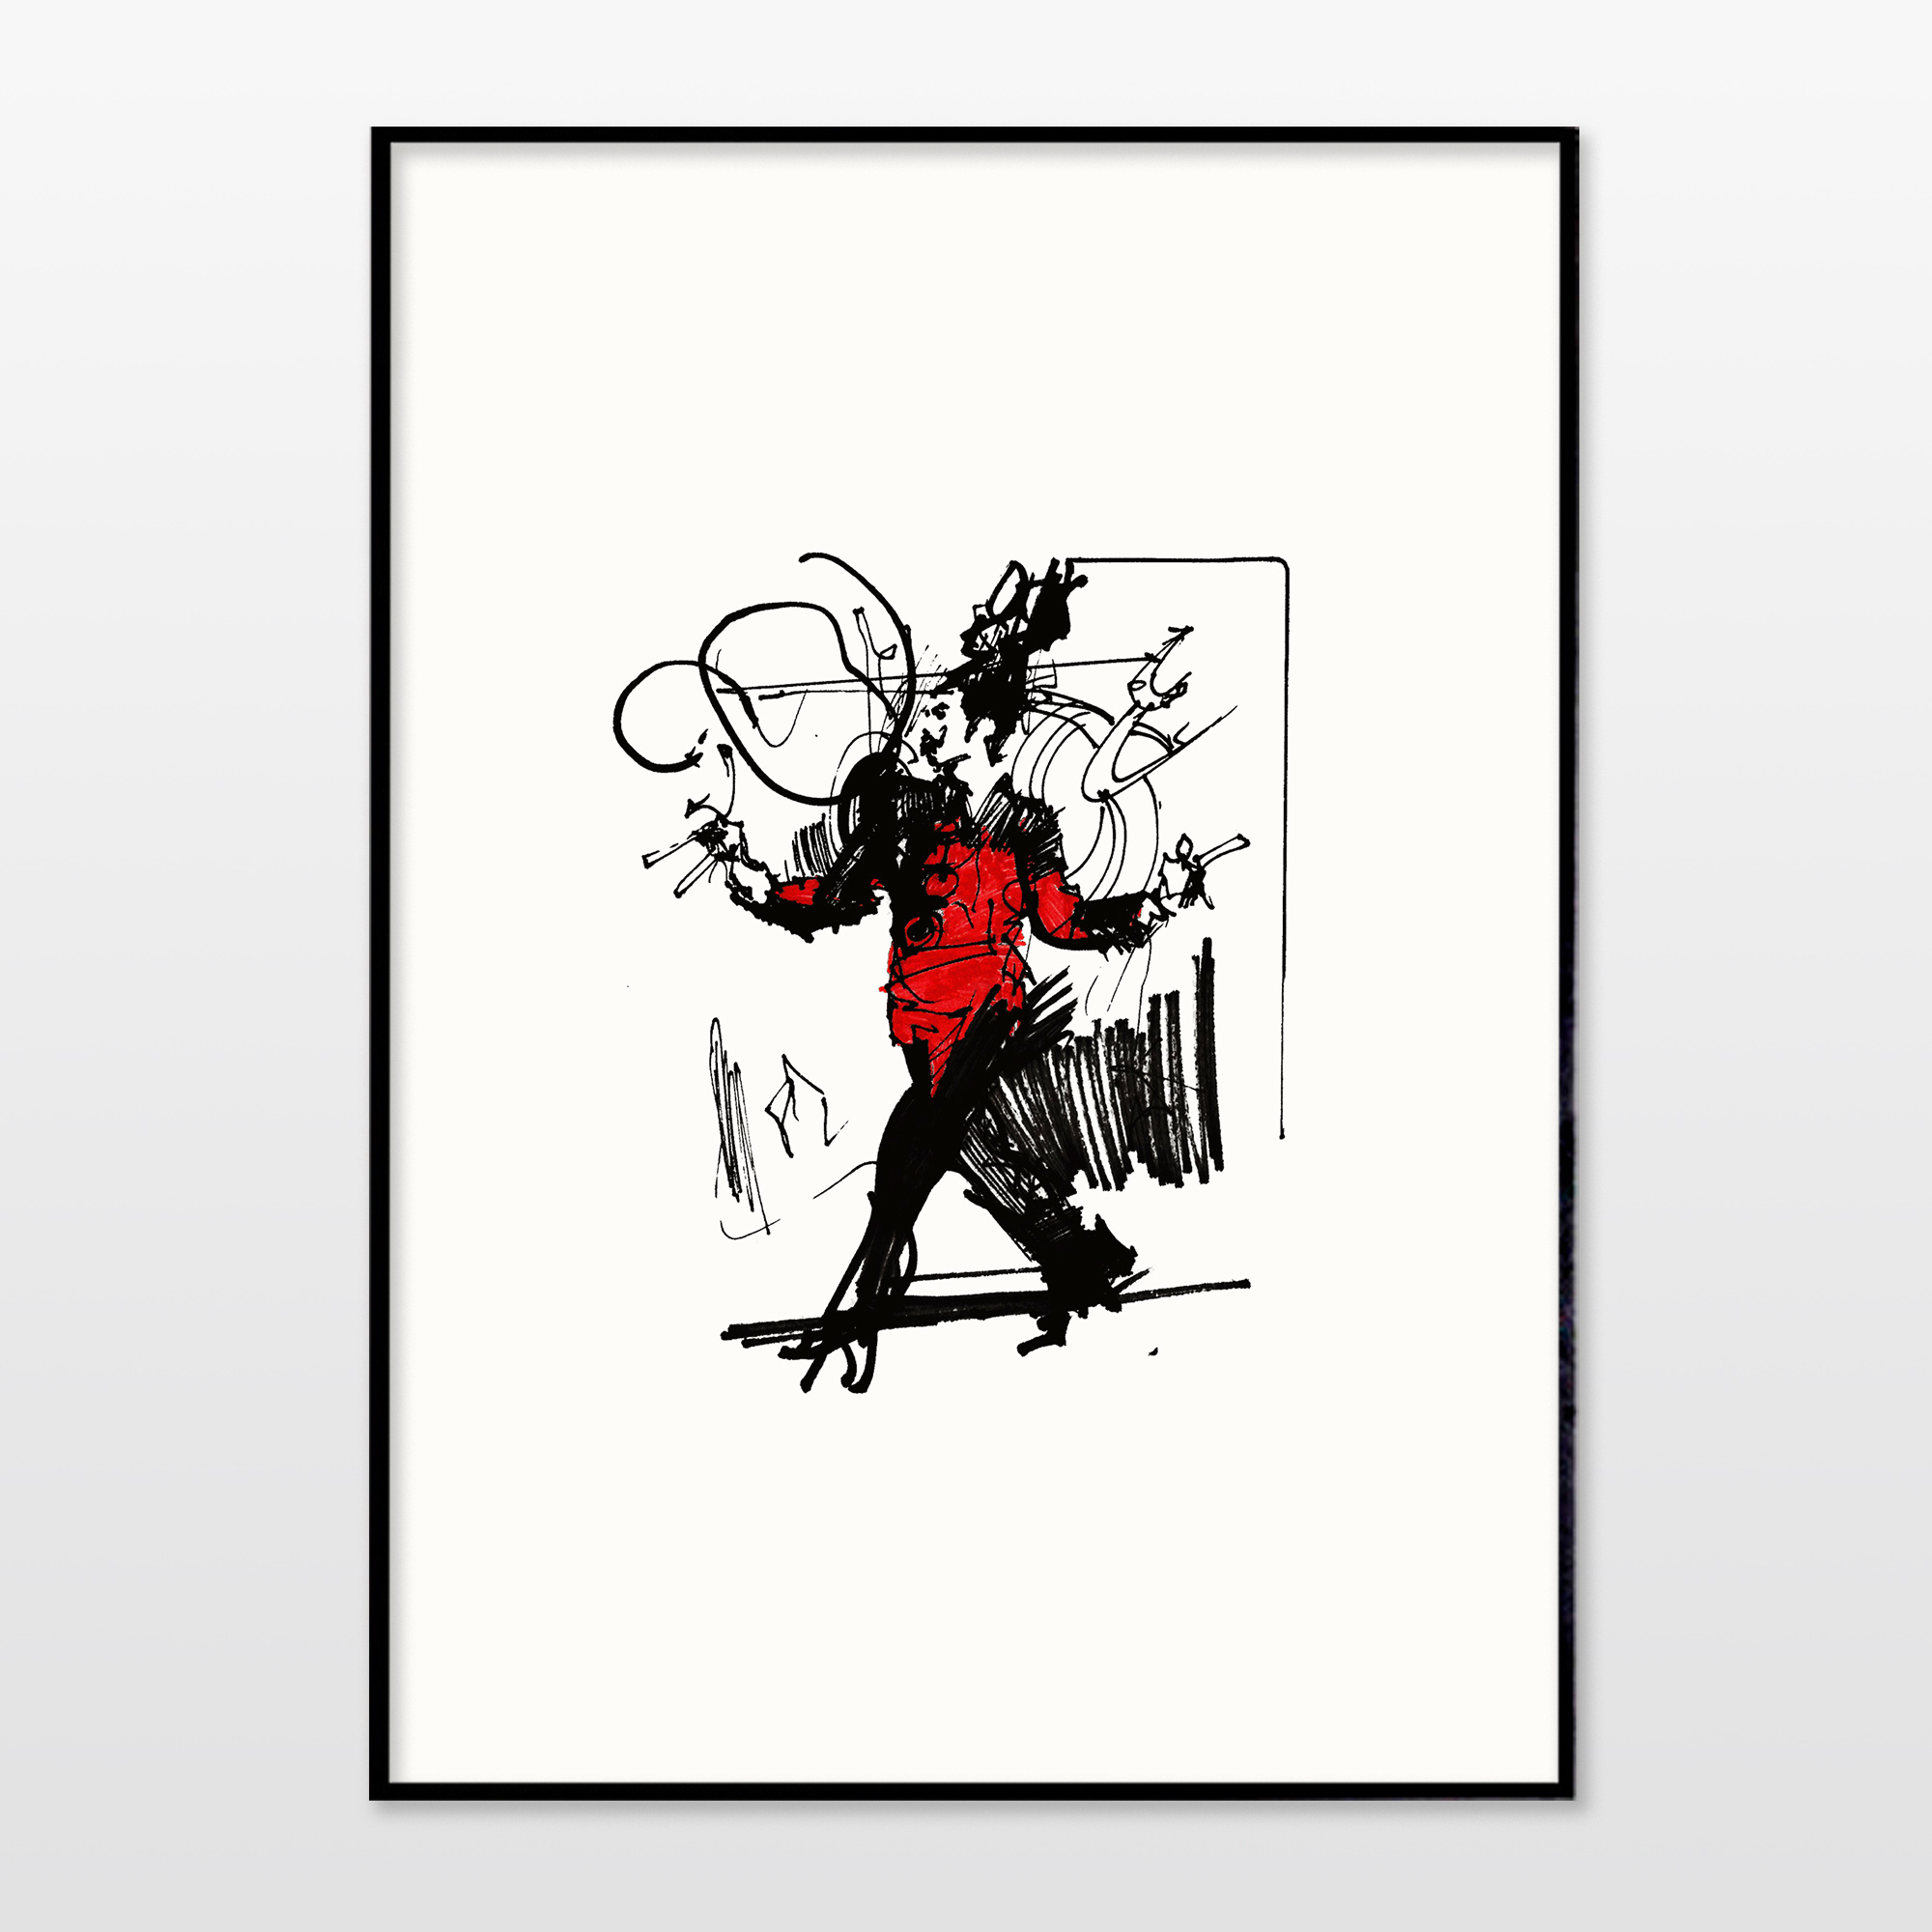 posters-prints, giclee-print, aesthetic, figurative, illustrative, portraiture, bodies, movement, people, black, red, white, ink, paper, contemporary-art, danish, decorative, design, interior, interior-design, men, modern, modern-art, nordic, posters, prints, scandinavien, Buy original high quality art. Paintings, drawings, limited edition prints & posters by talented artists.